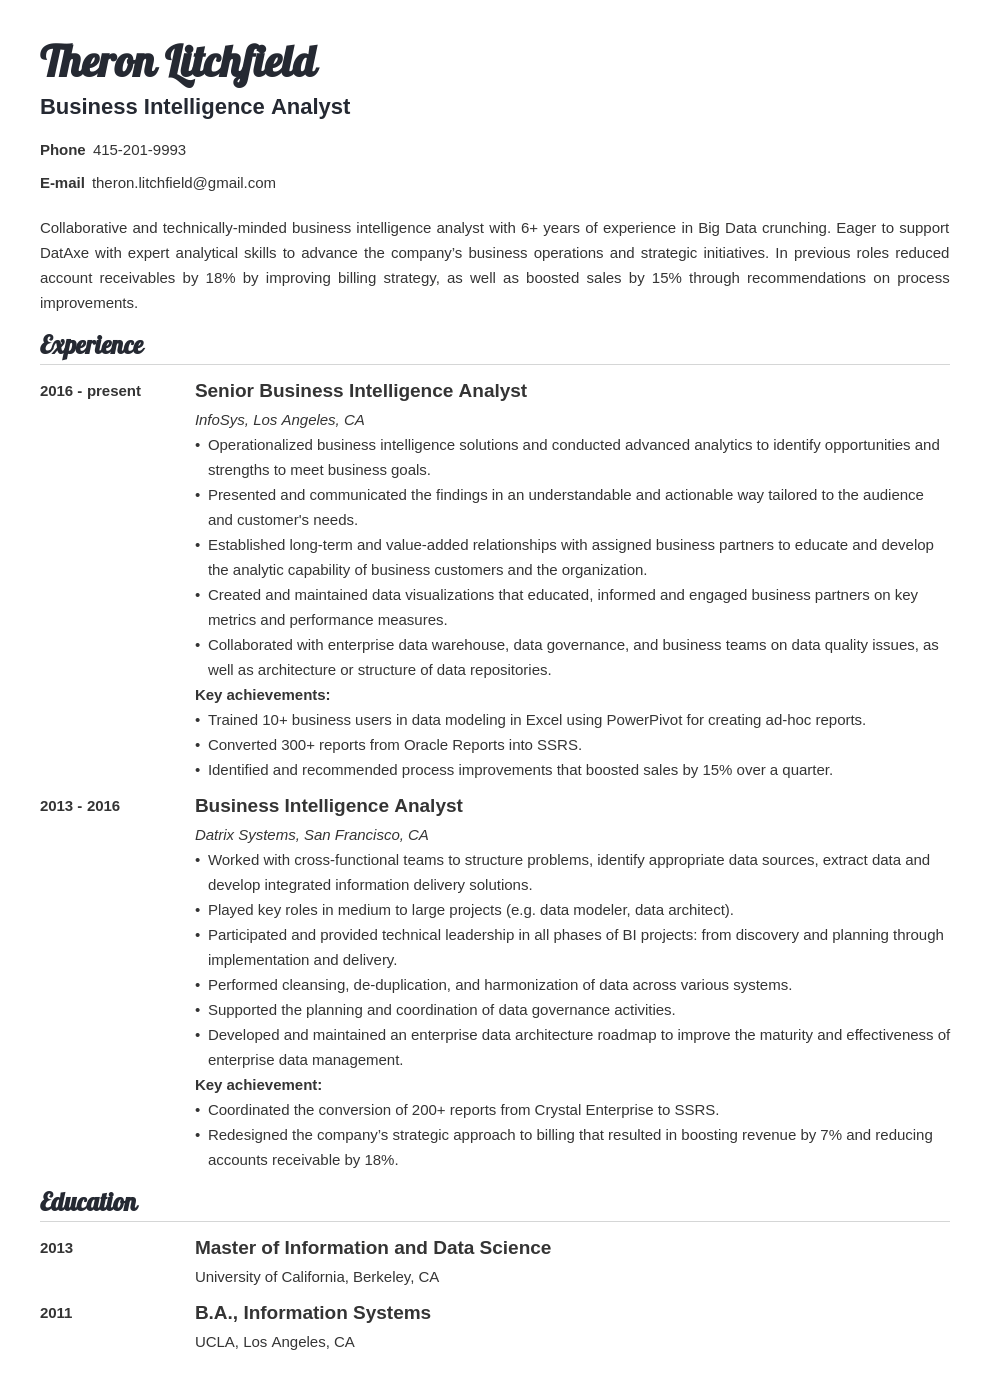 Business Intelligence Resume Example Template Valera Business Intelligence Business Intelligence Analyst Job Resume Examples